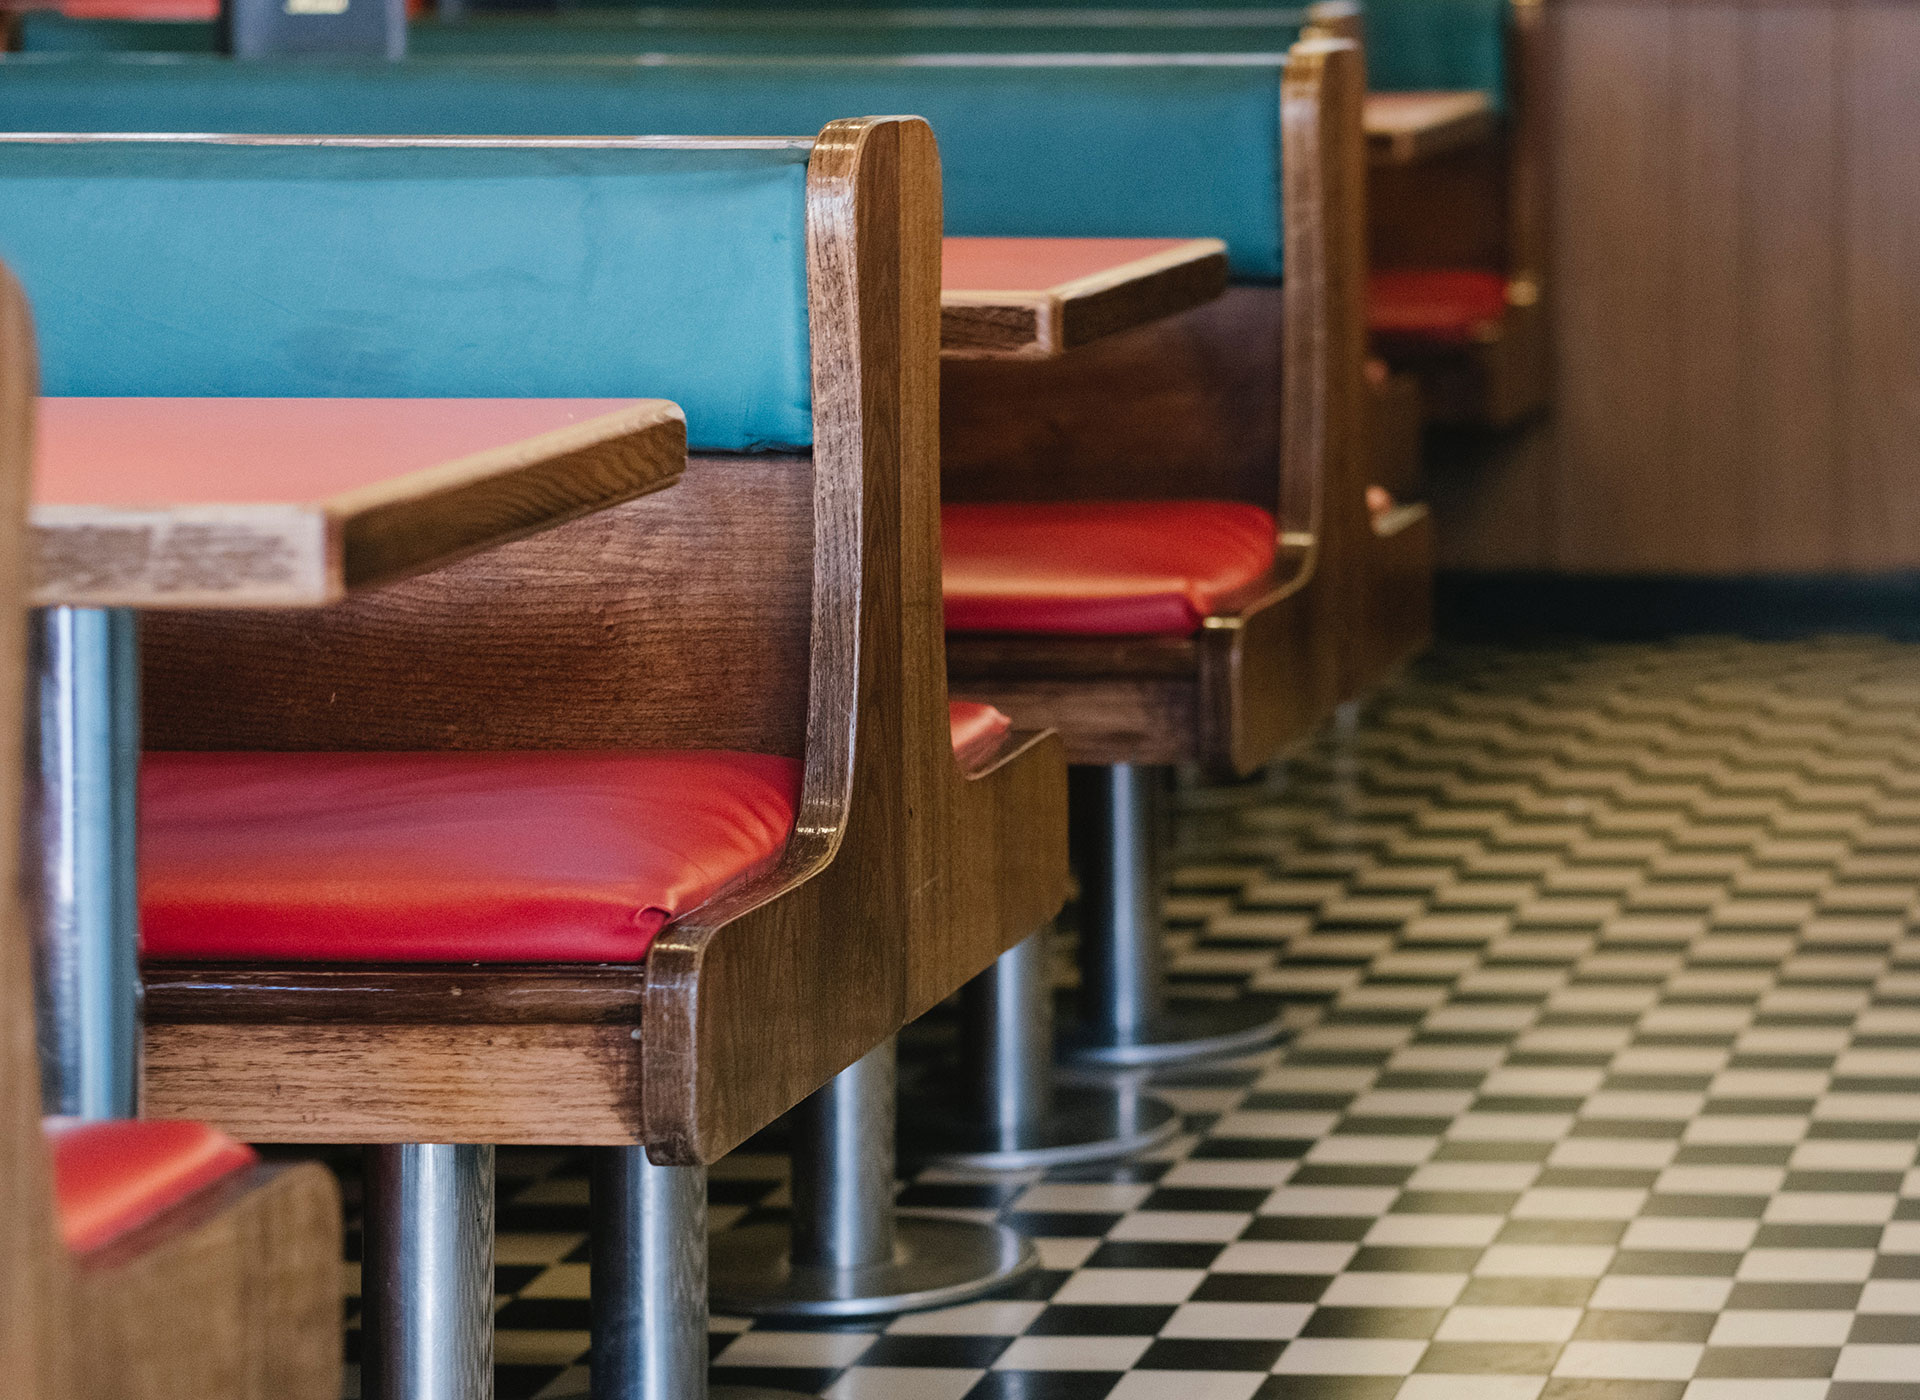 Eat Out to Help Out transformed dining habits, app data shows